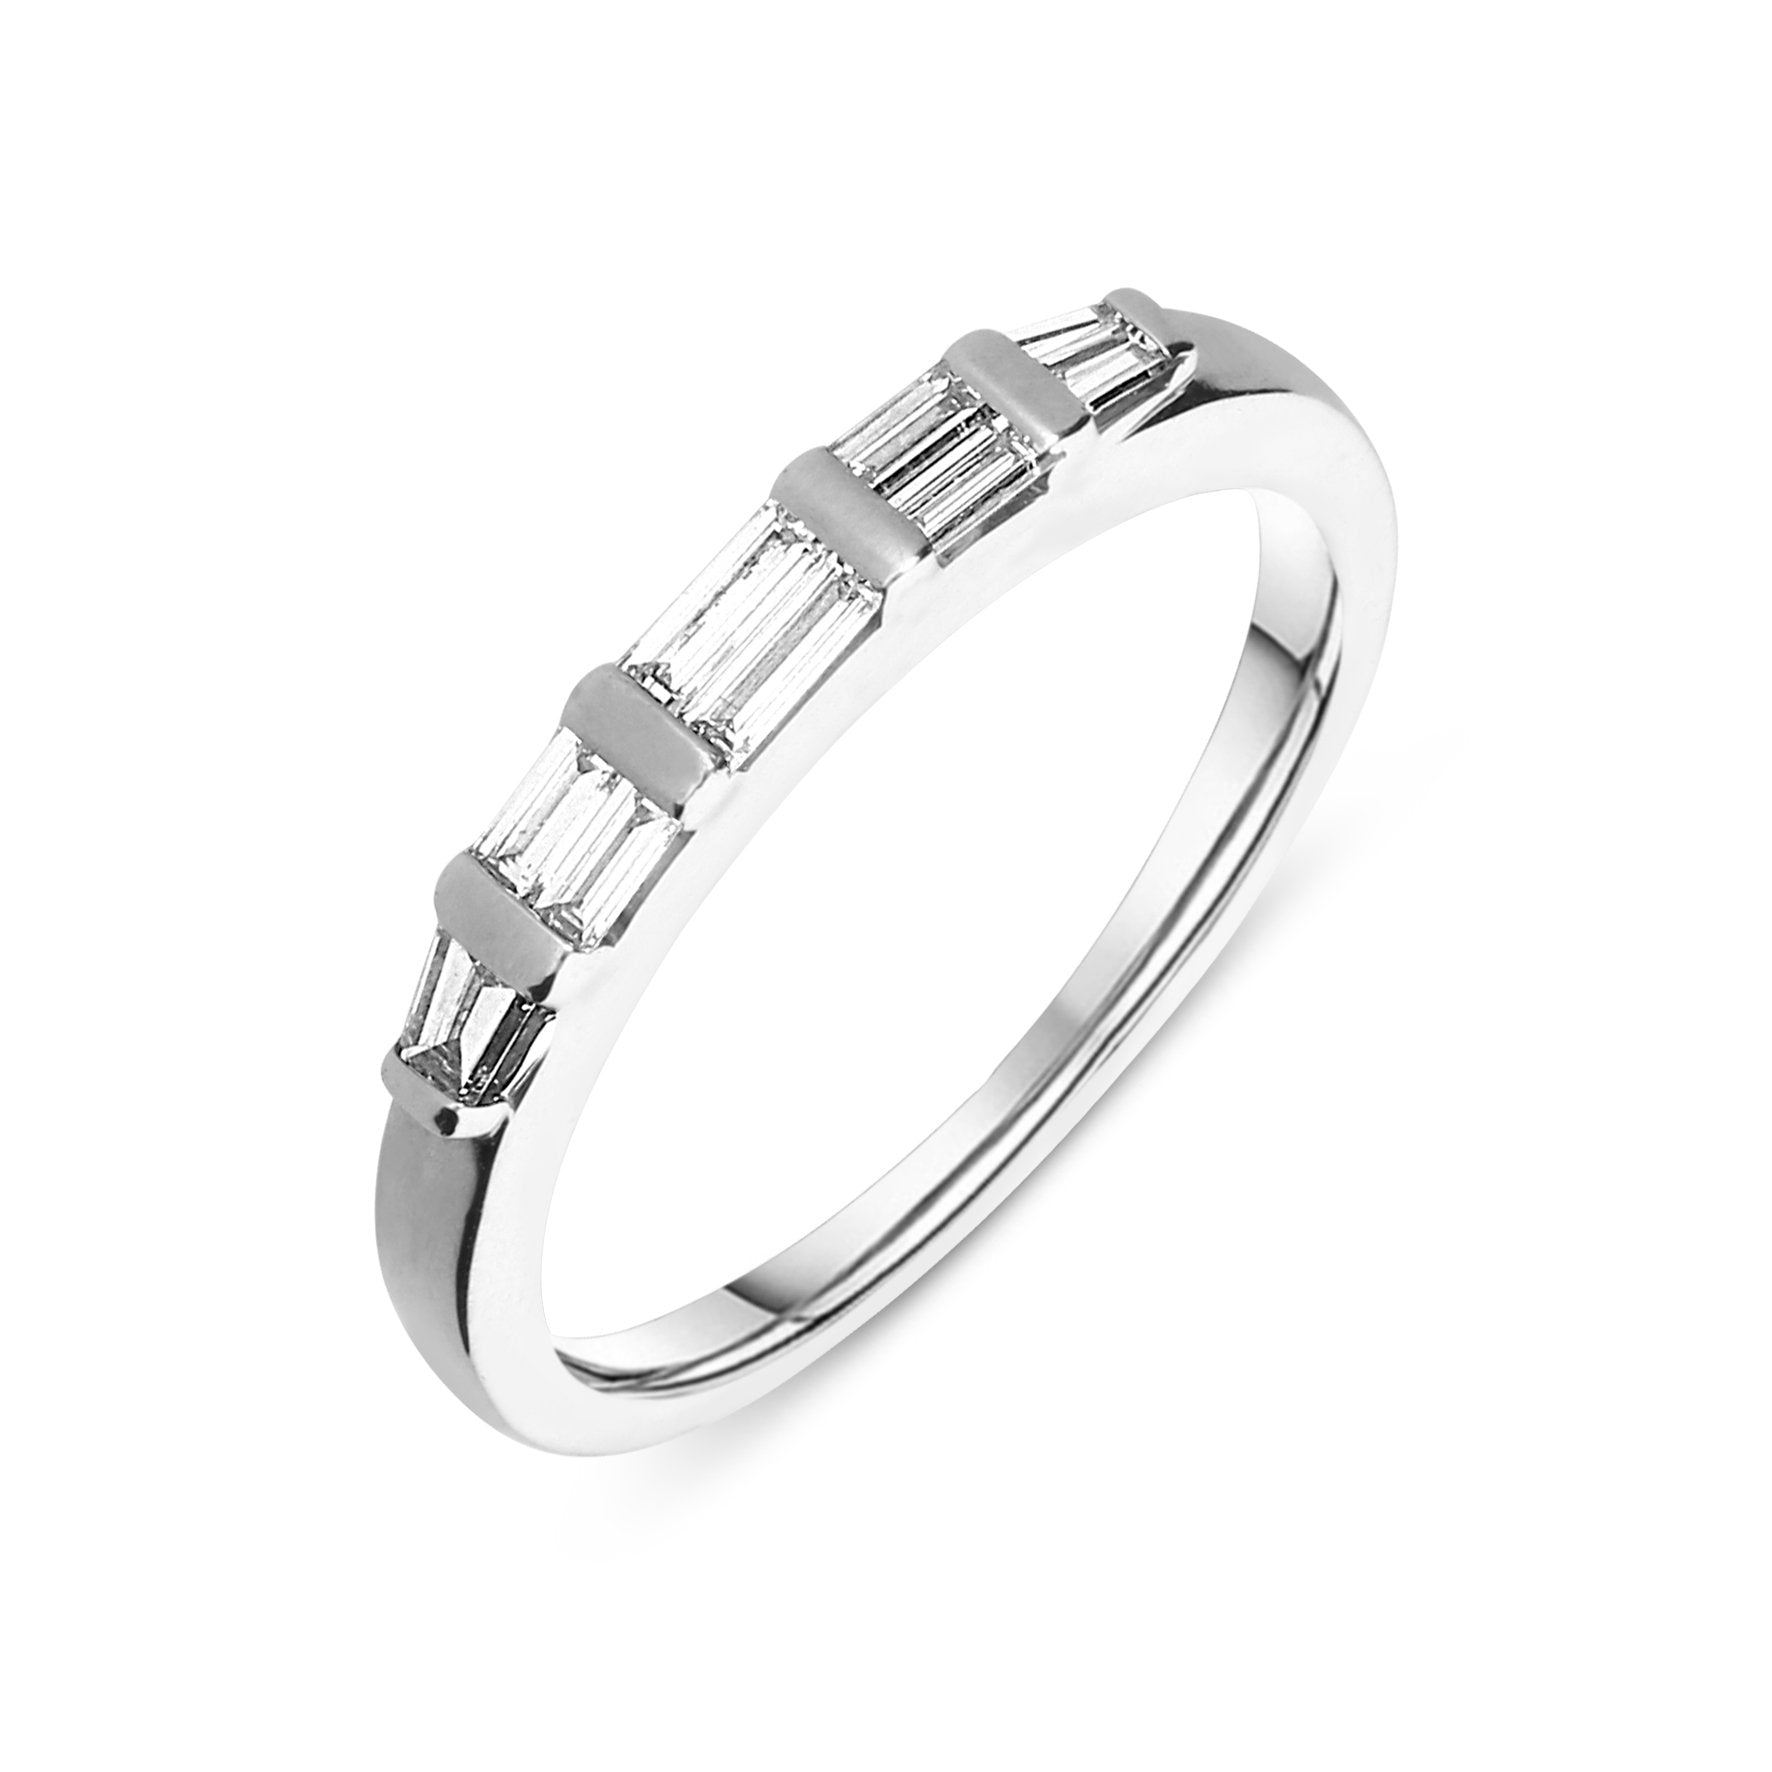 ring wedding round diamond baguette carat in bridge jewelry platinum rings ben